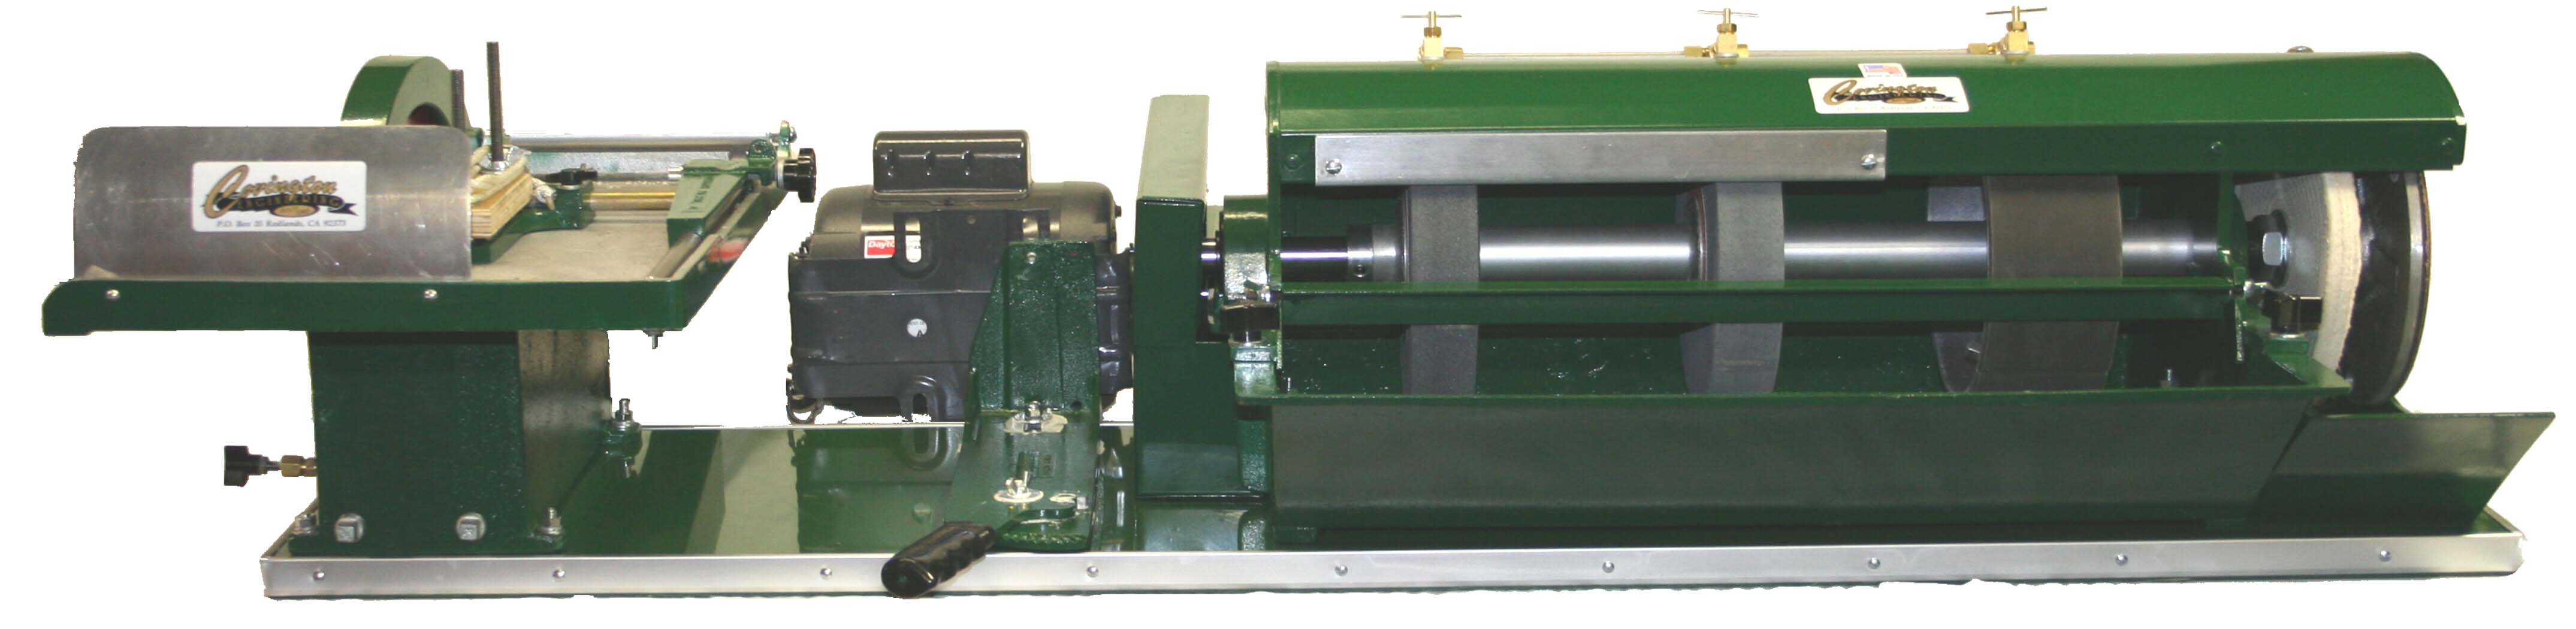 8 inch diamond combination machine with 10 inch trim saw and power feed 447ddp